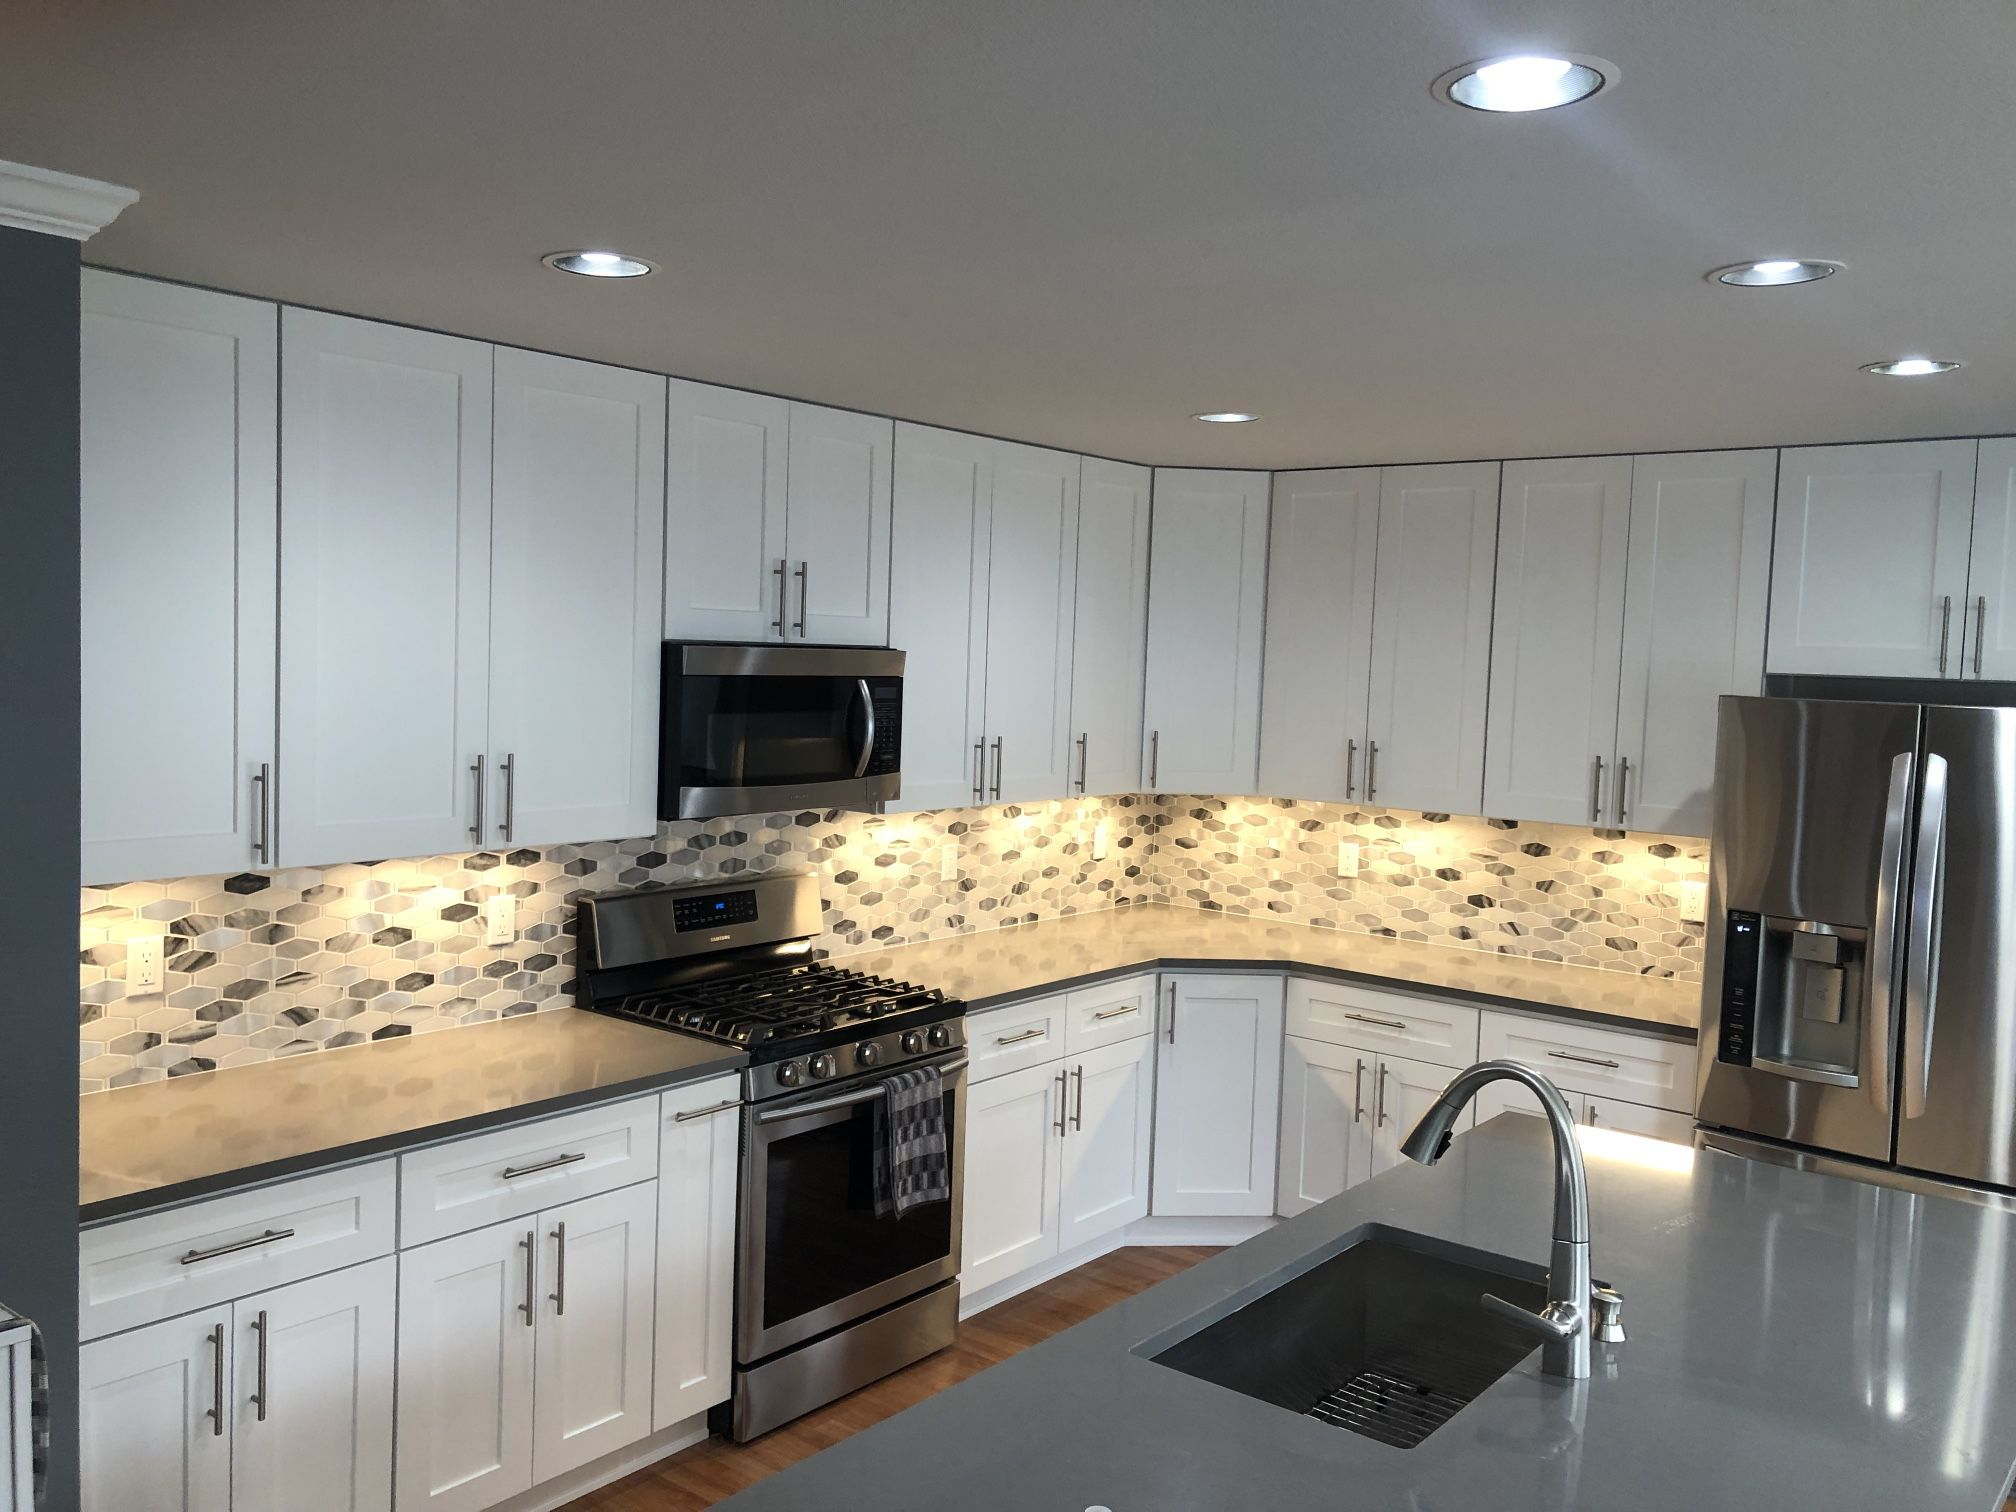 New And Used Kitchen Cabinets For Sale In Puyallup Wa Offerup